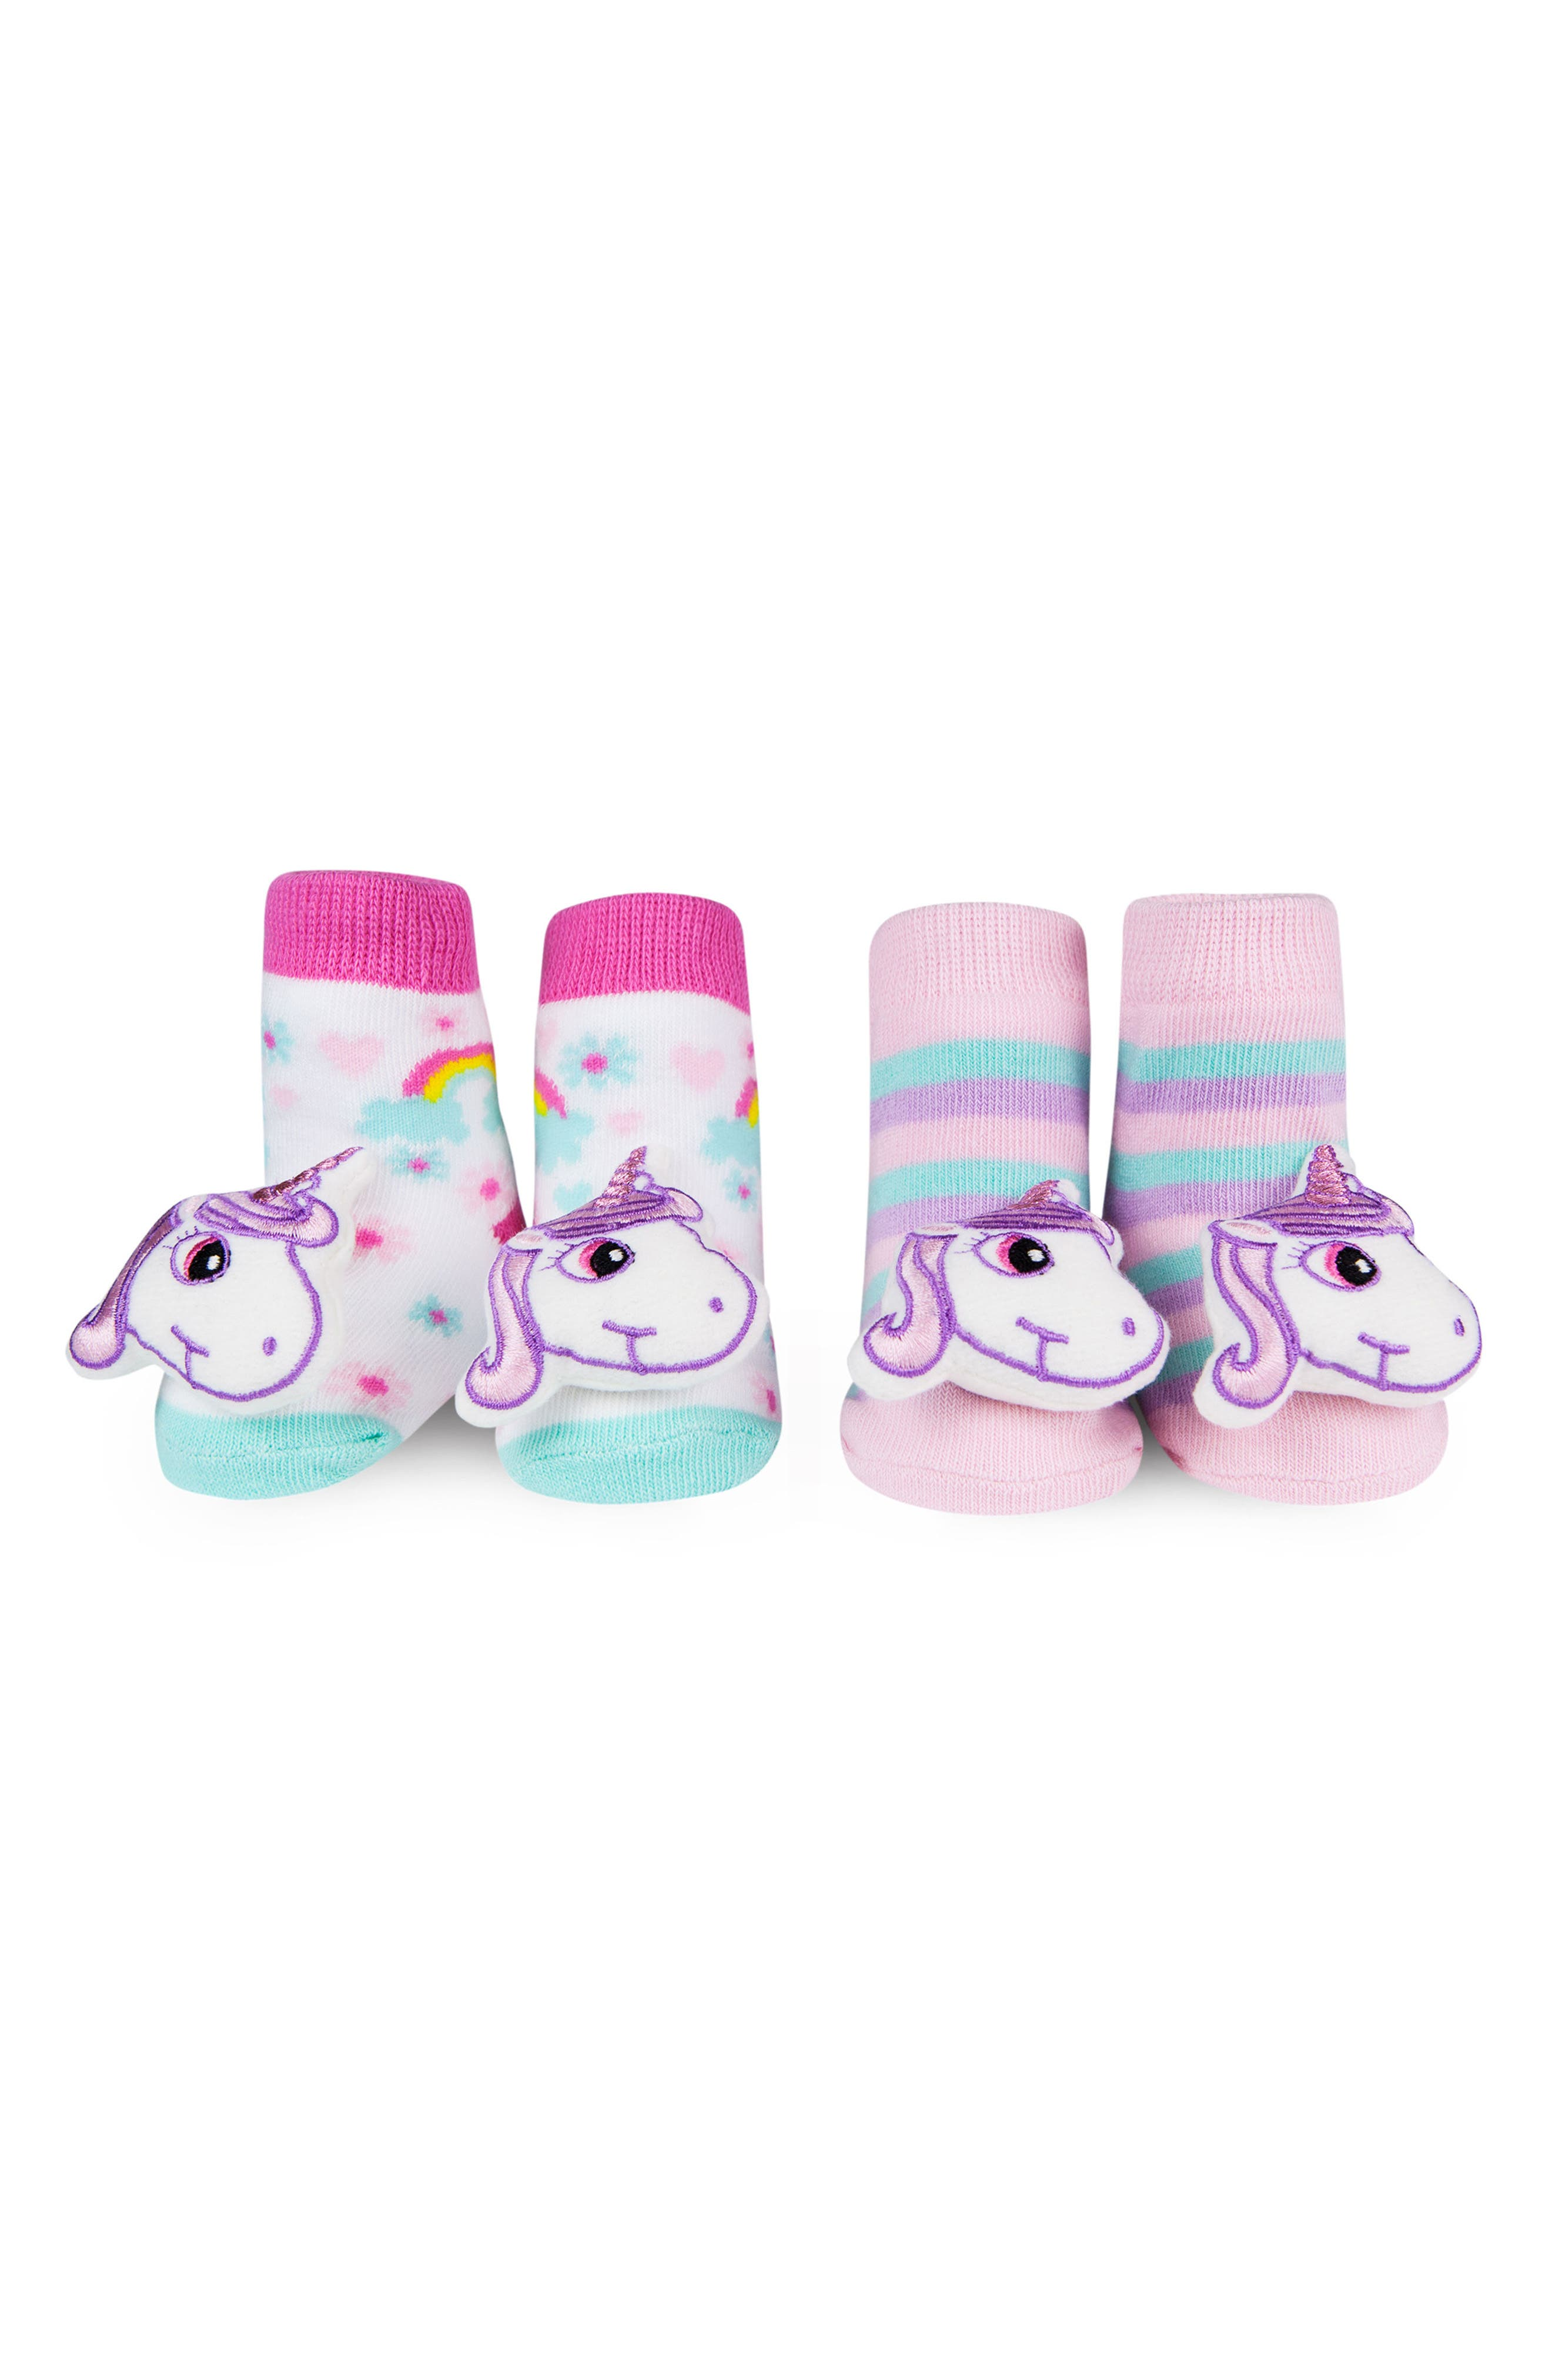 & Friends 2-Pack Unicorn Rattle Socks,                         Main,                         color, Pink/ White